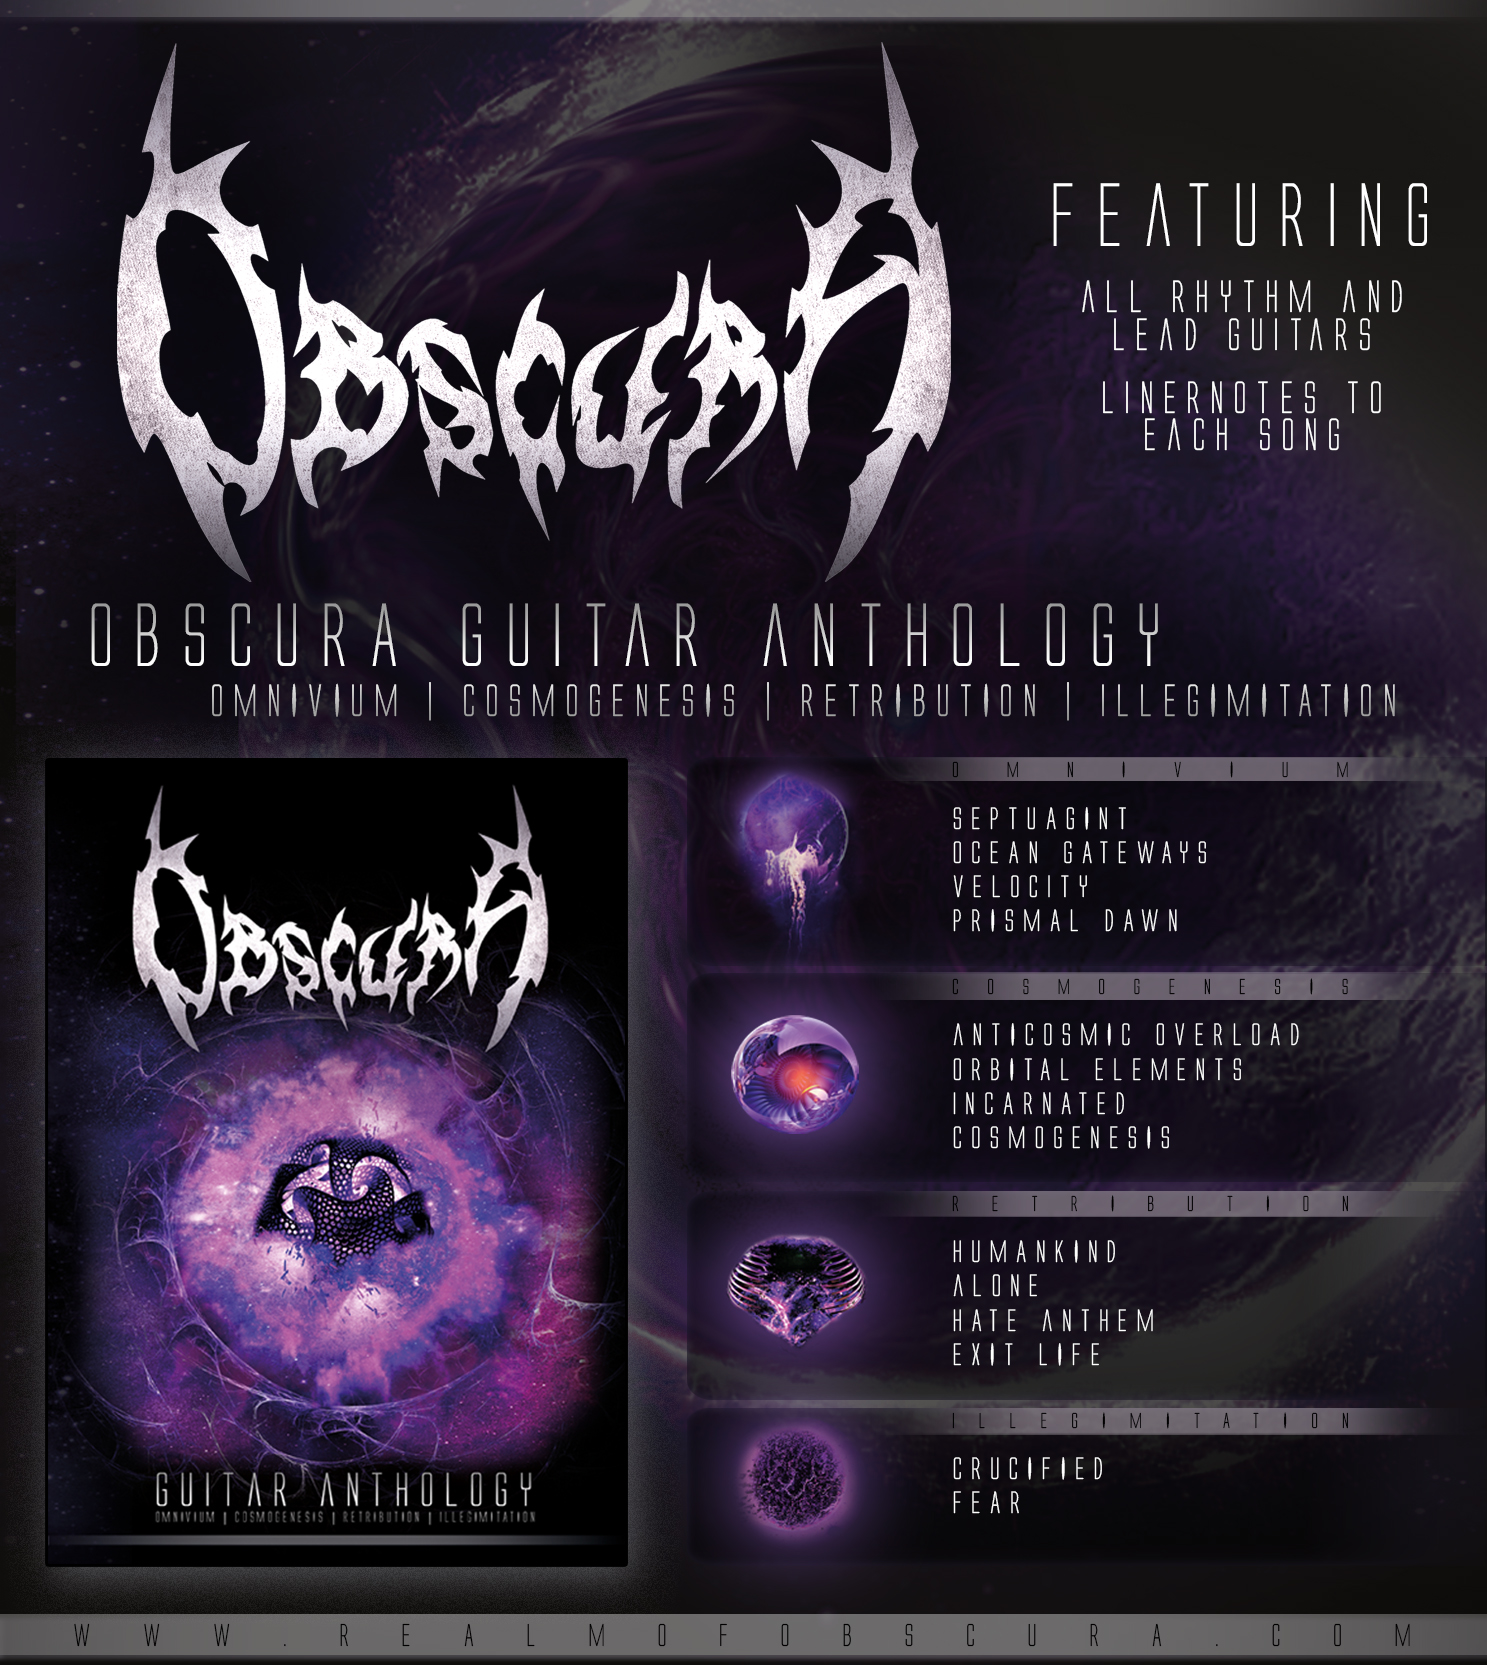 guitar anthology: